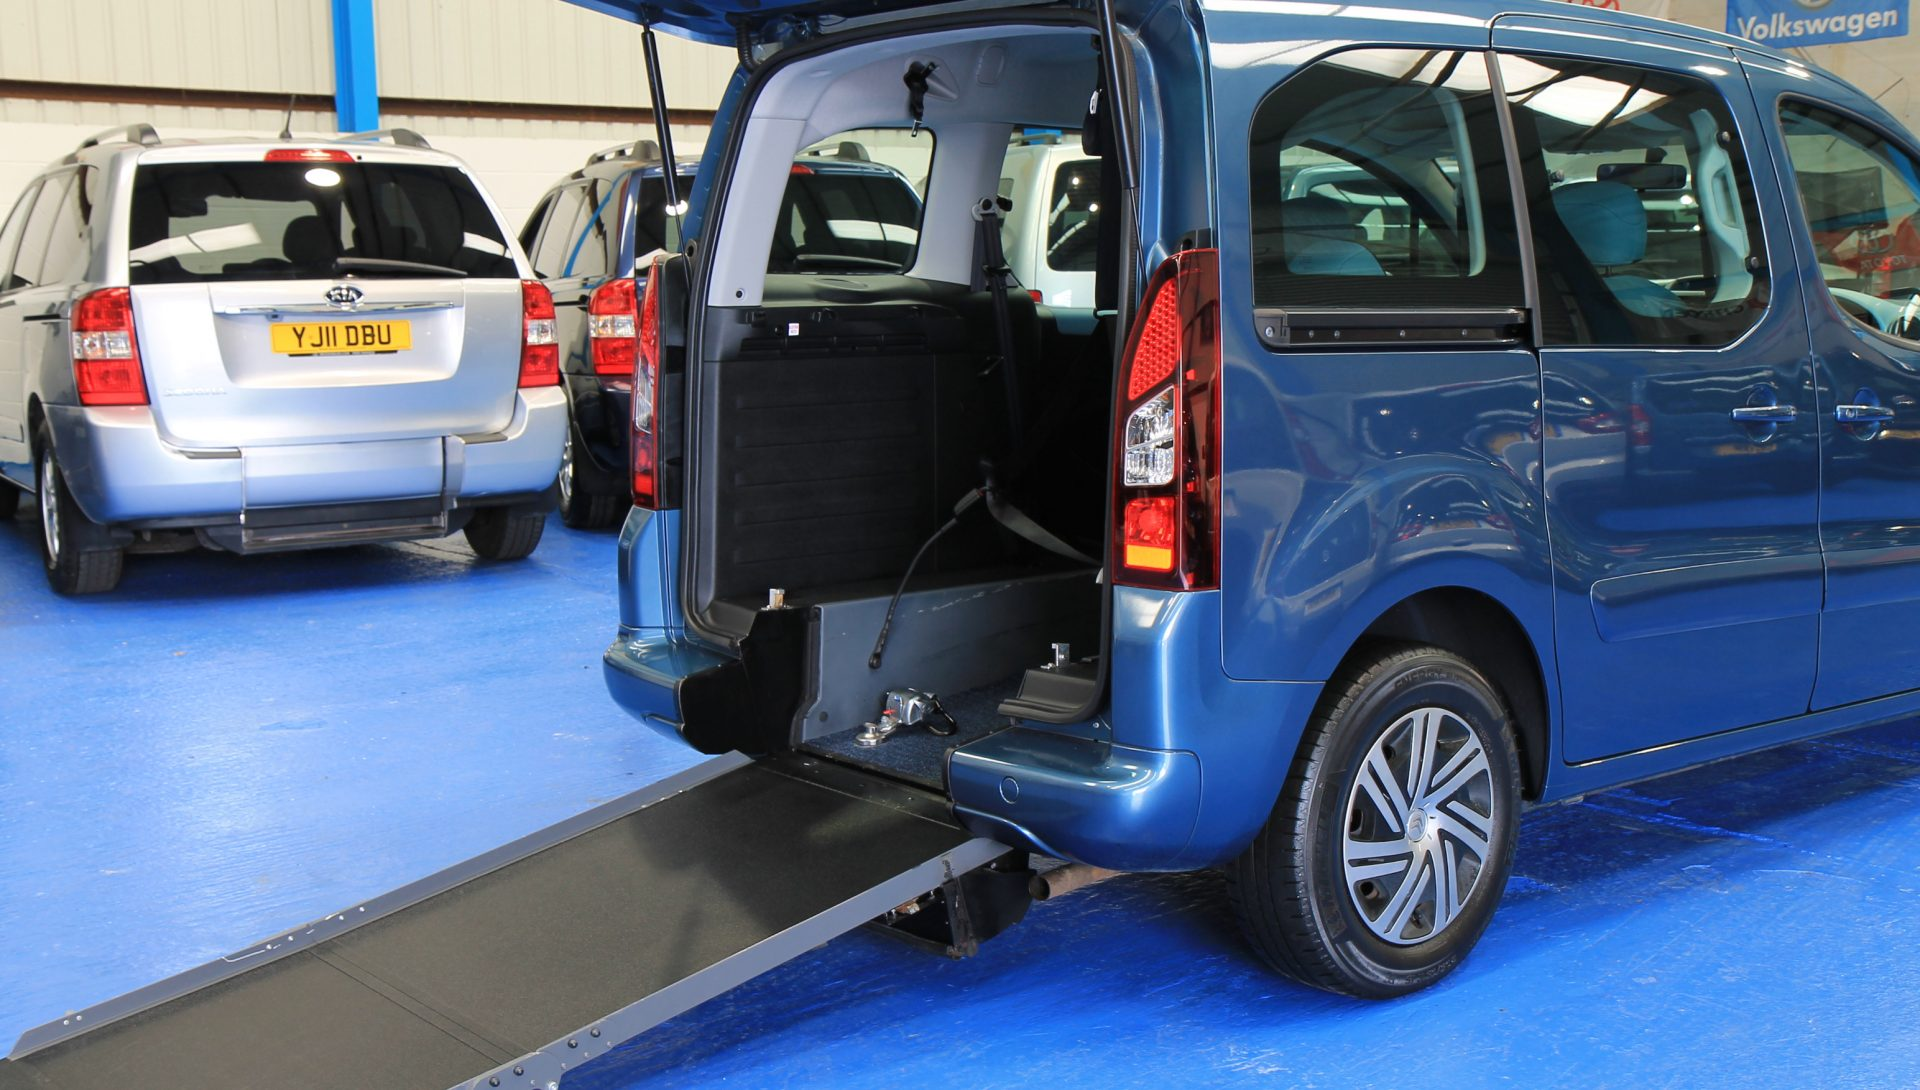 Wheelchair Accessible Vehicles: Berlingo Wheelchair Accessible Car Sn64voo